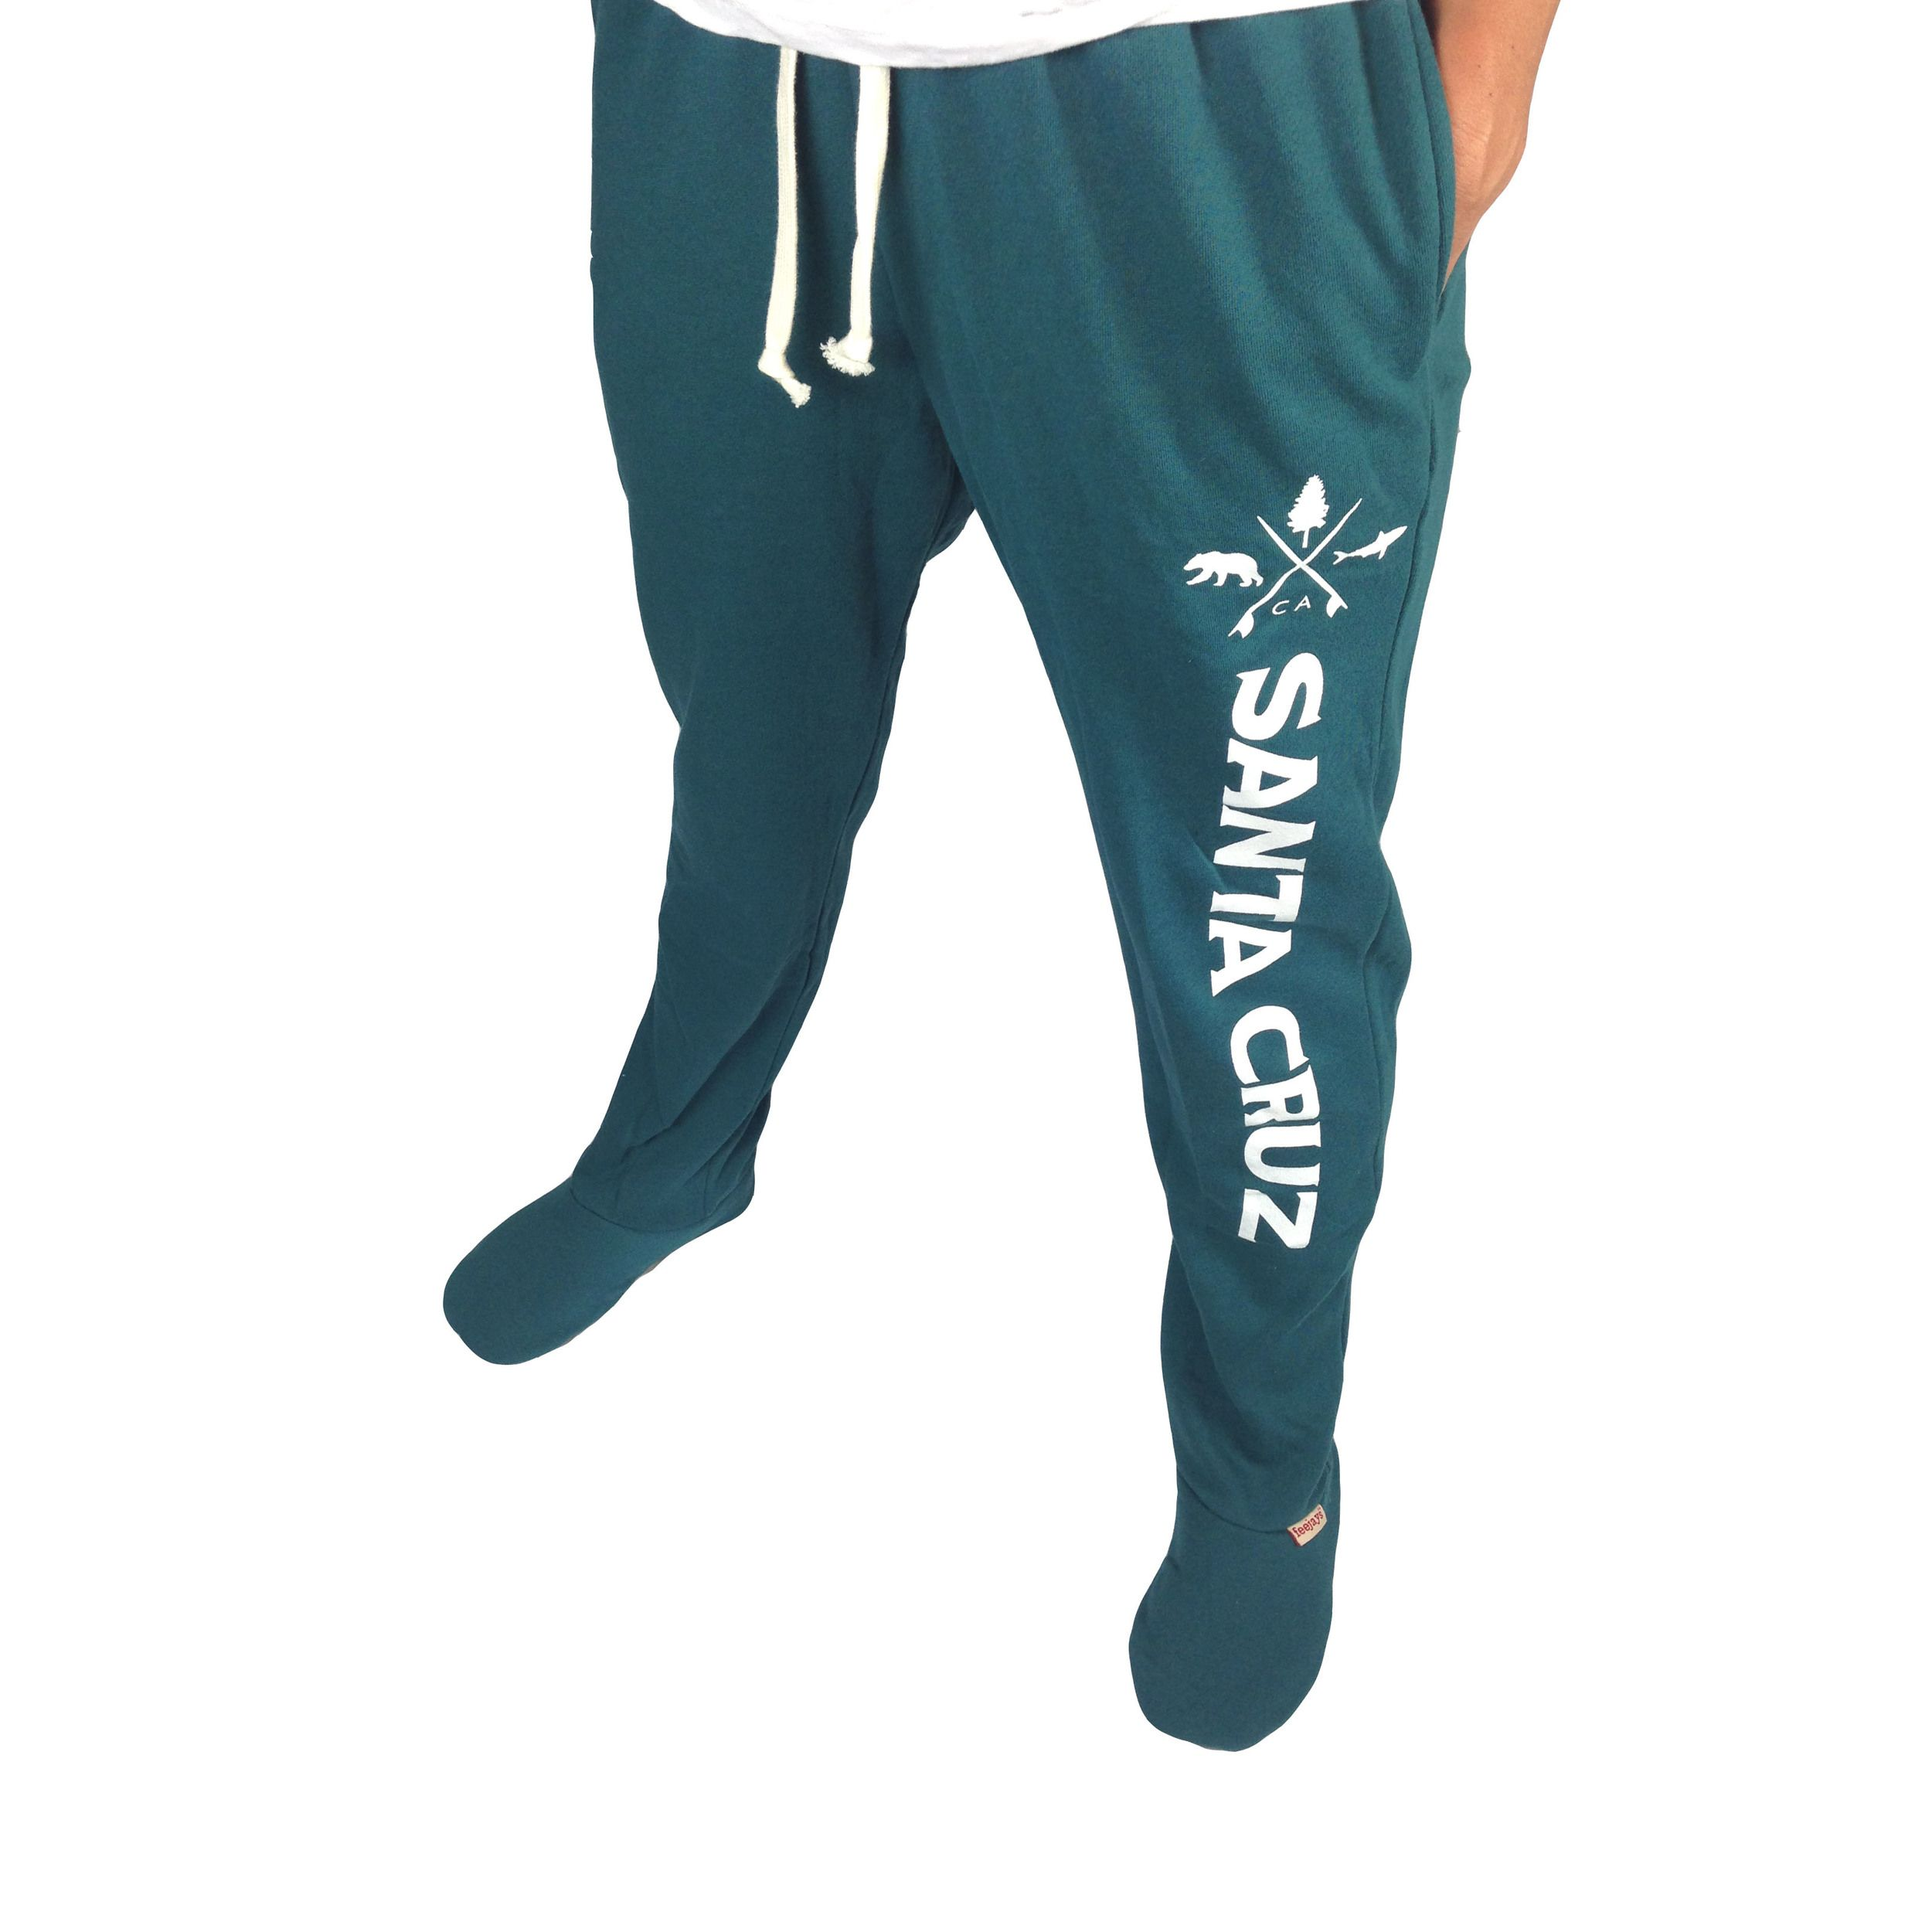 Choose Las Santa Cruz Dark Teal Feejays Sweatpants With Feet